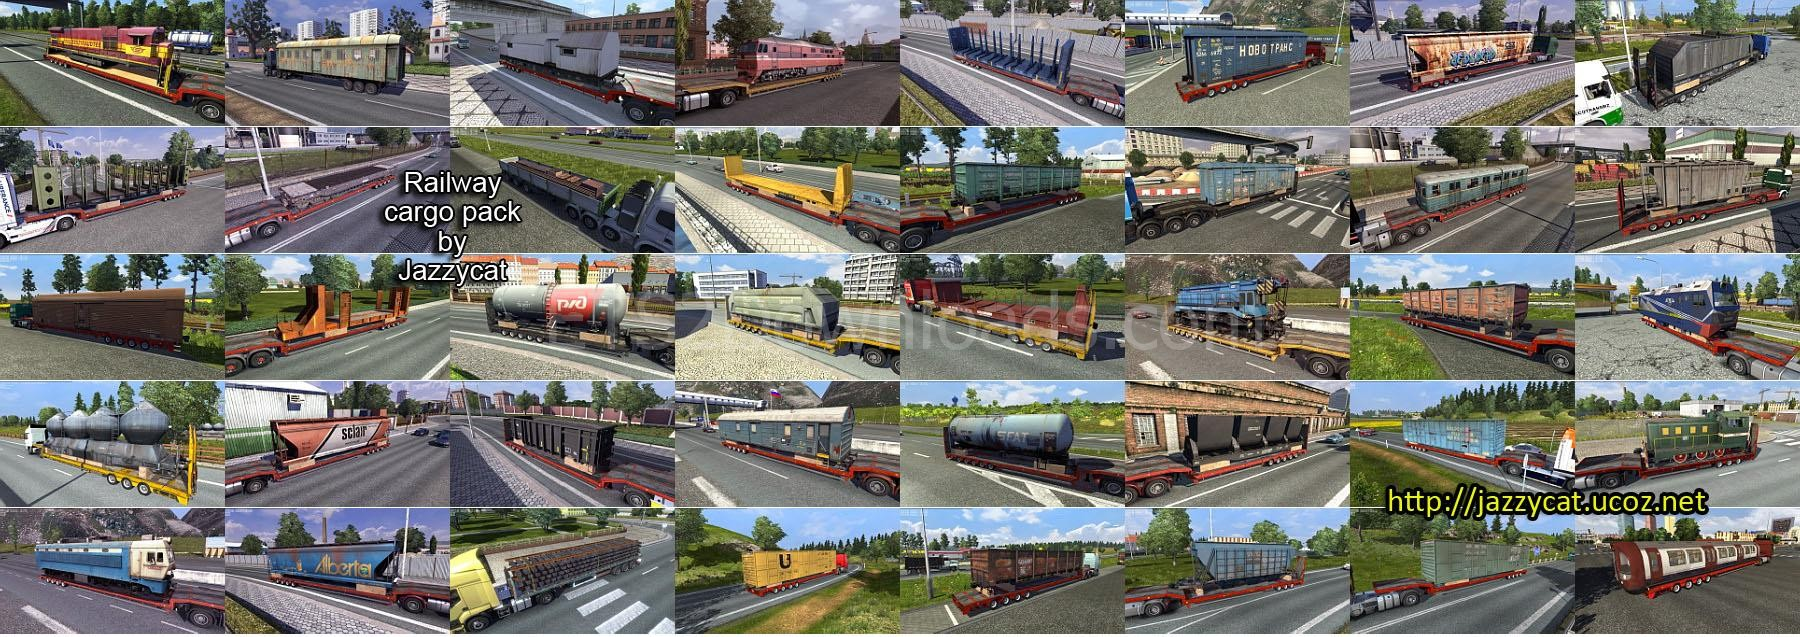 Railway Cargo Pack By Jazzycat v1 8 4 - ETS2 Mods